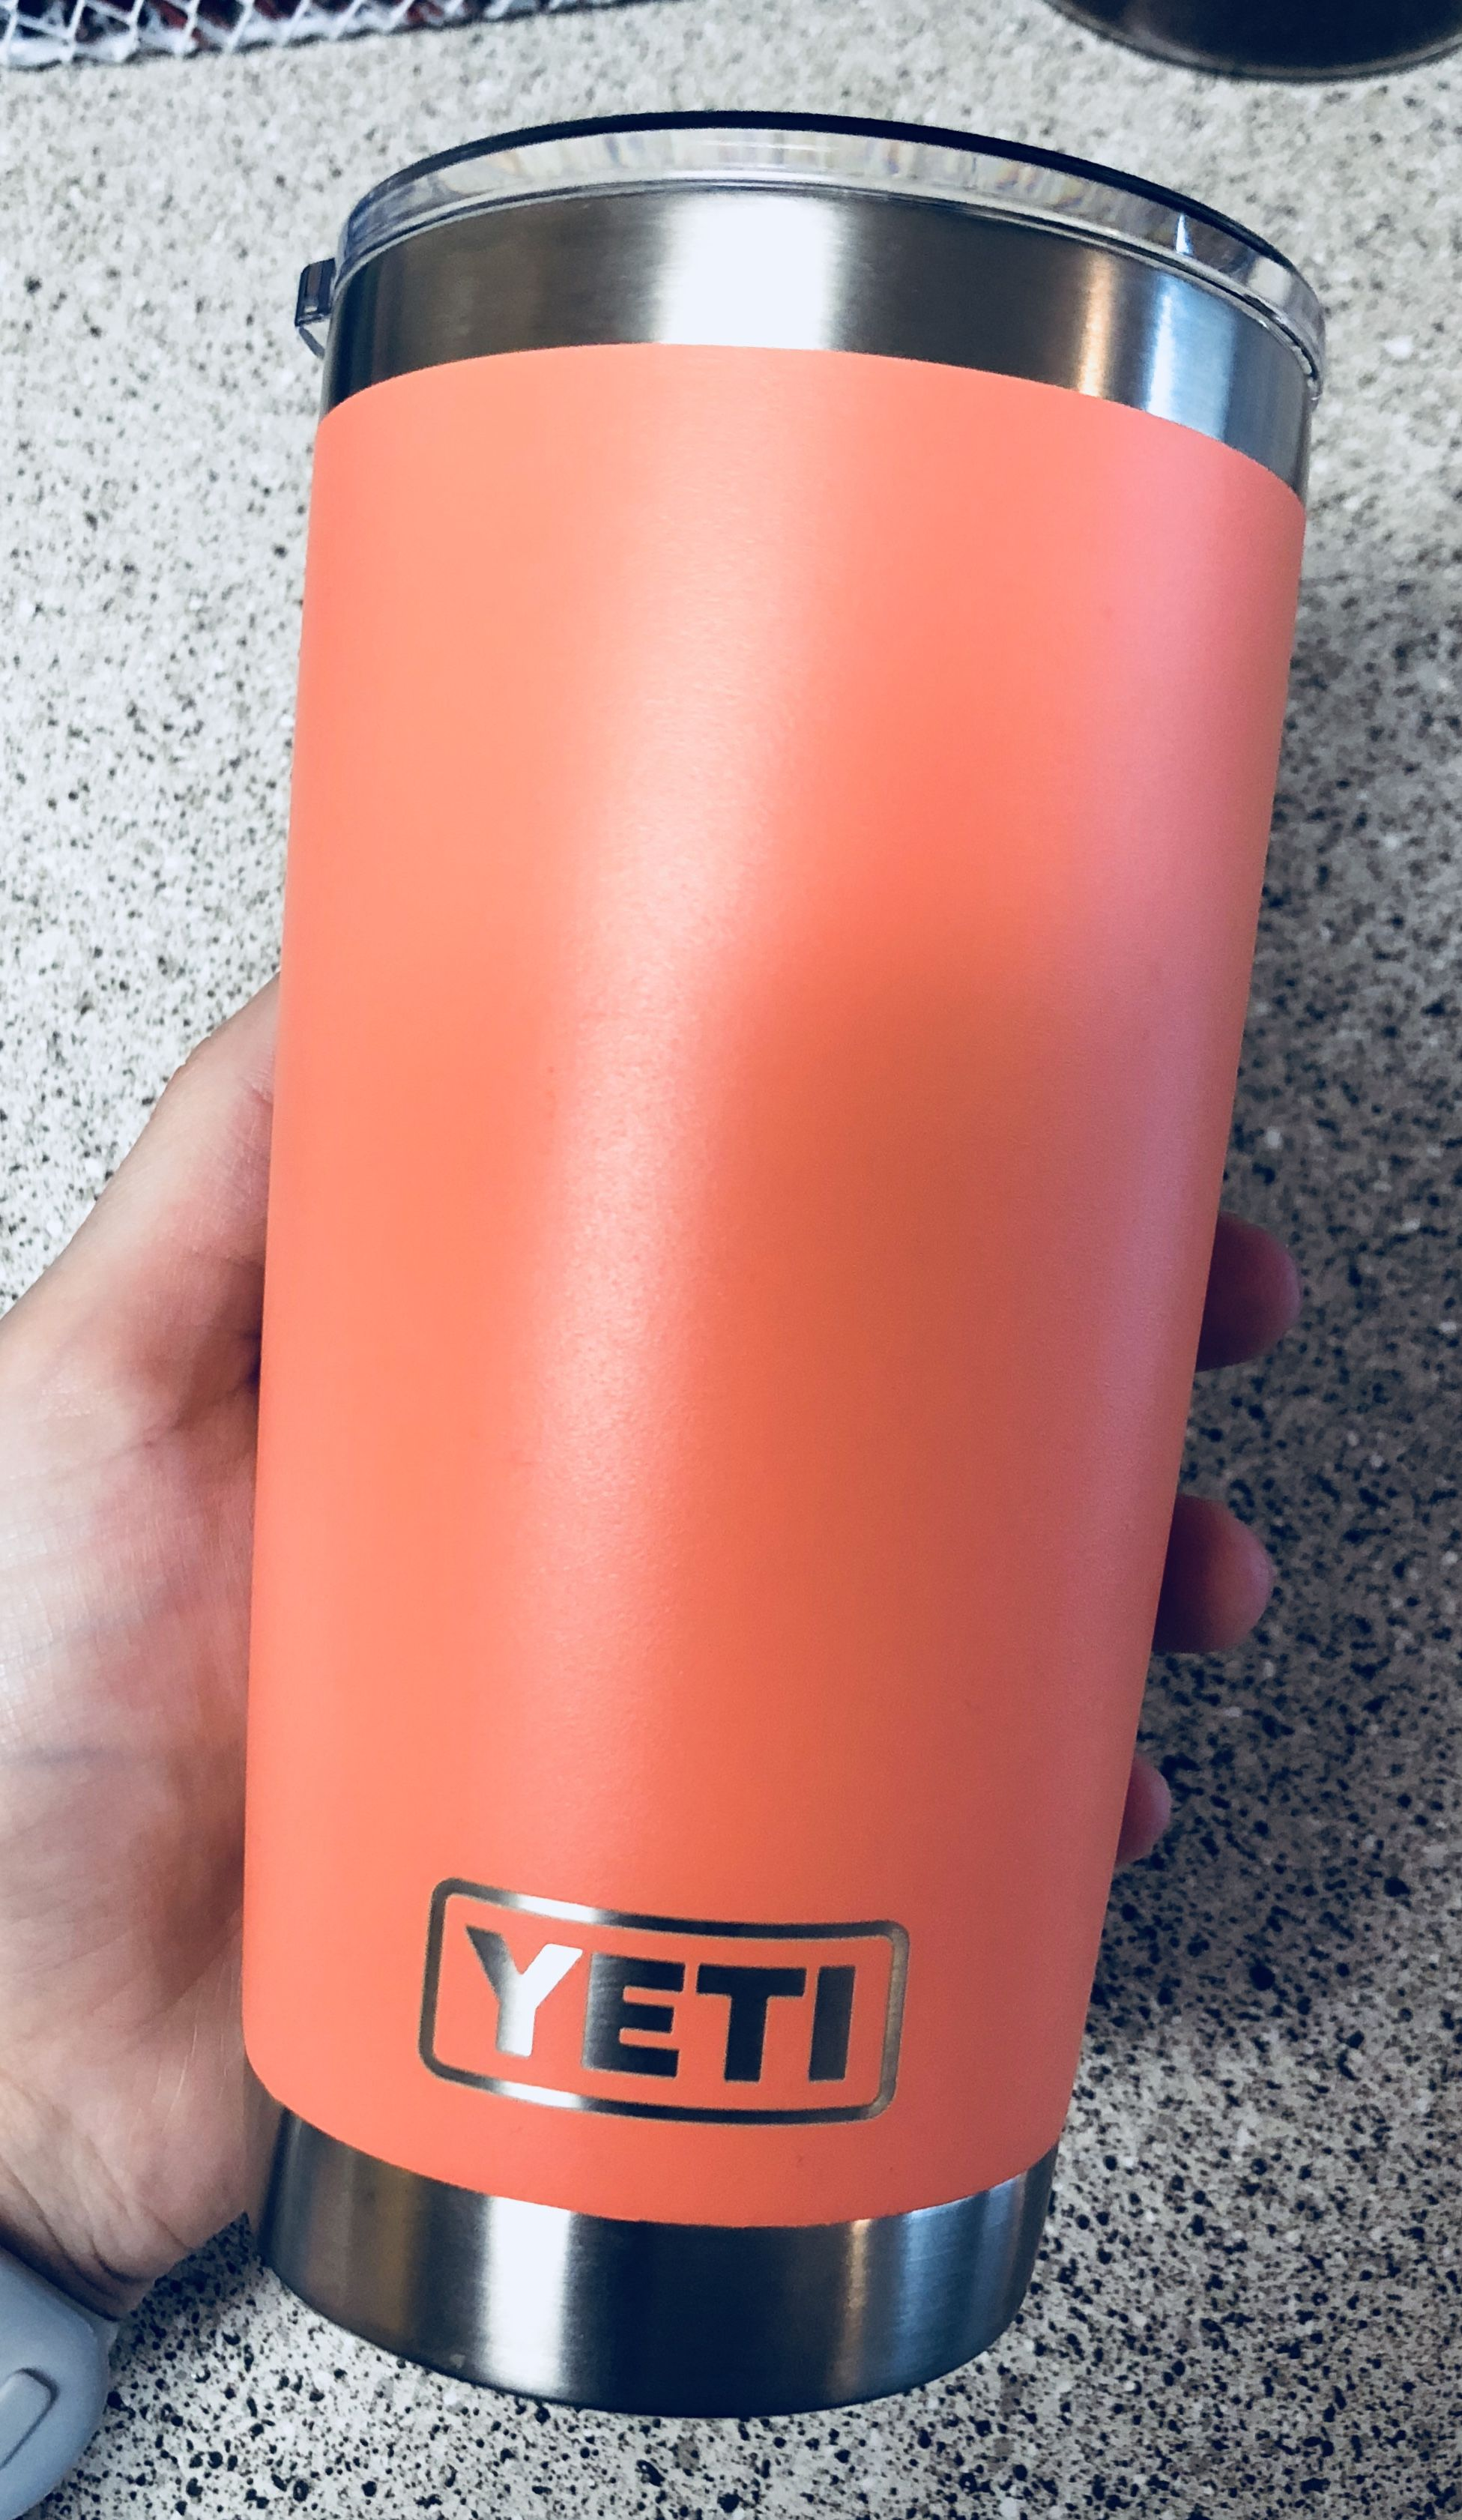 Limited Edition Coral Yeti 20oz Tumbler 🧡 | Personals in